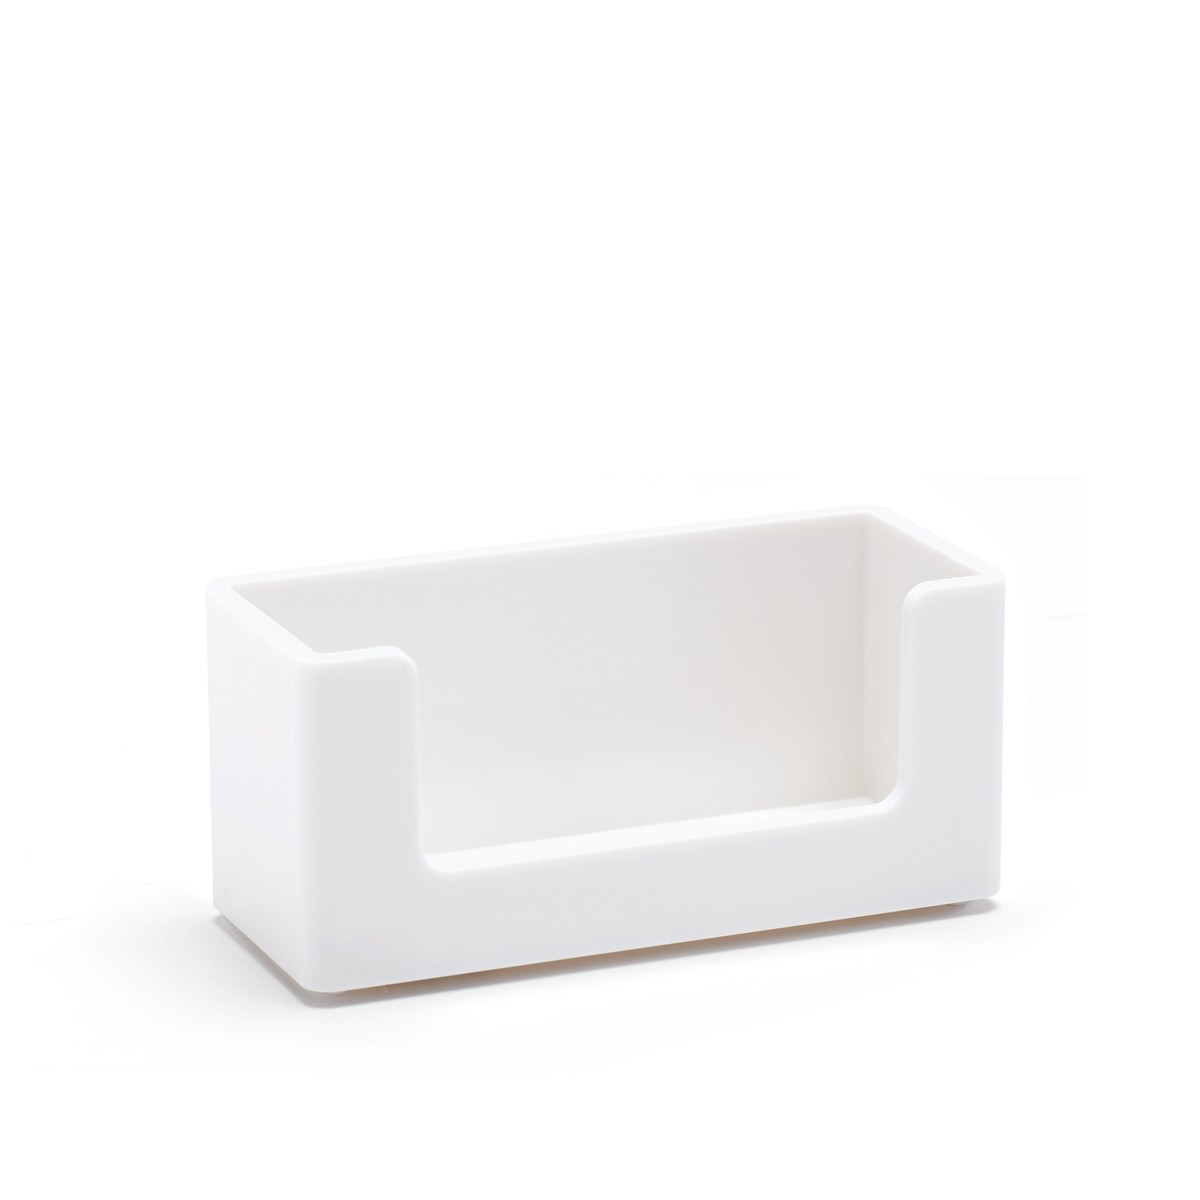 White Business Card Holder| Desk Accessories & Organization | Poppin